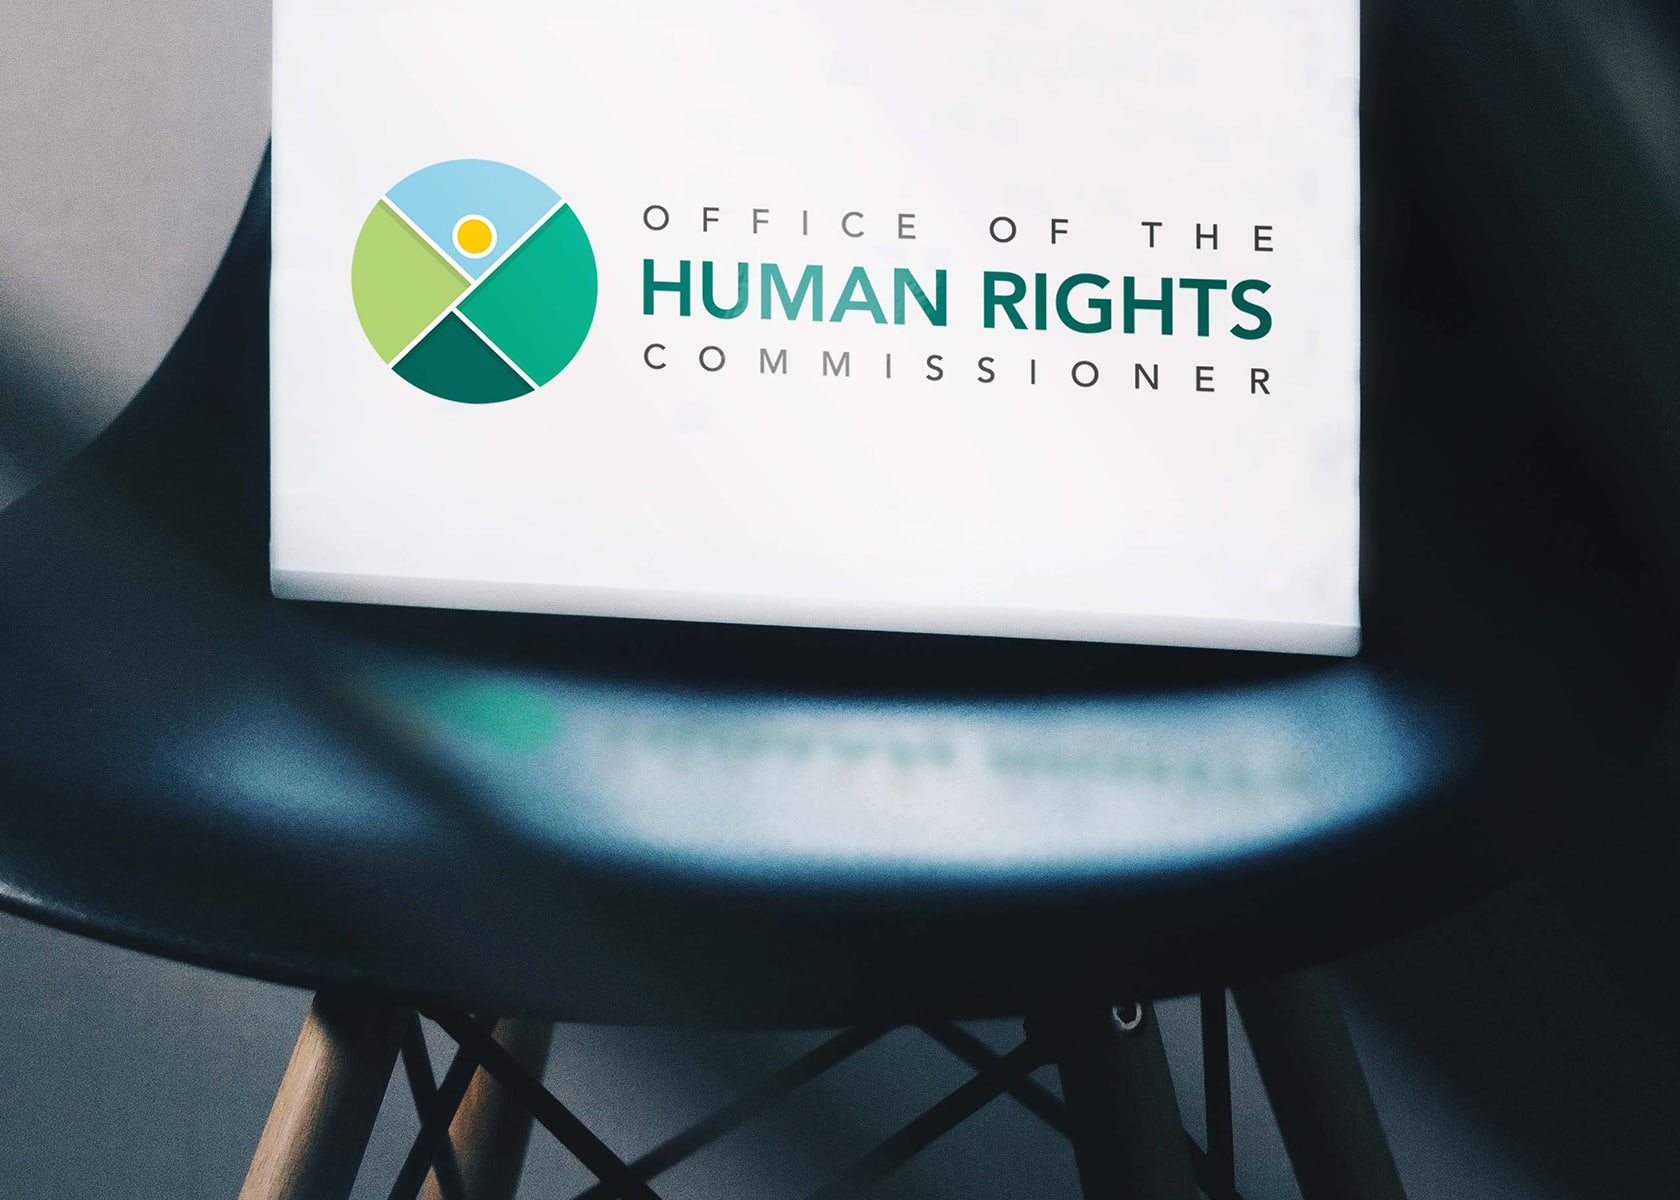 Office of the Human Rights Commissioner identity